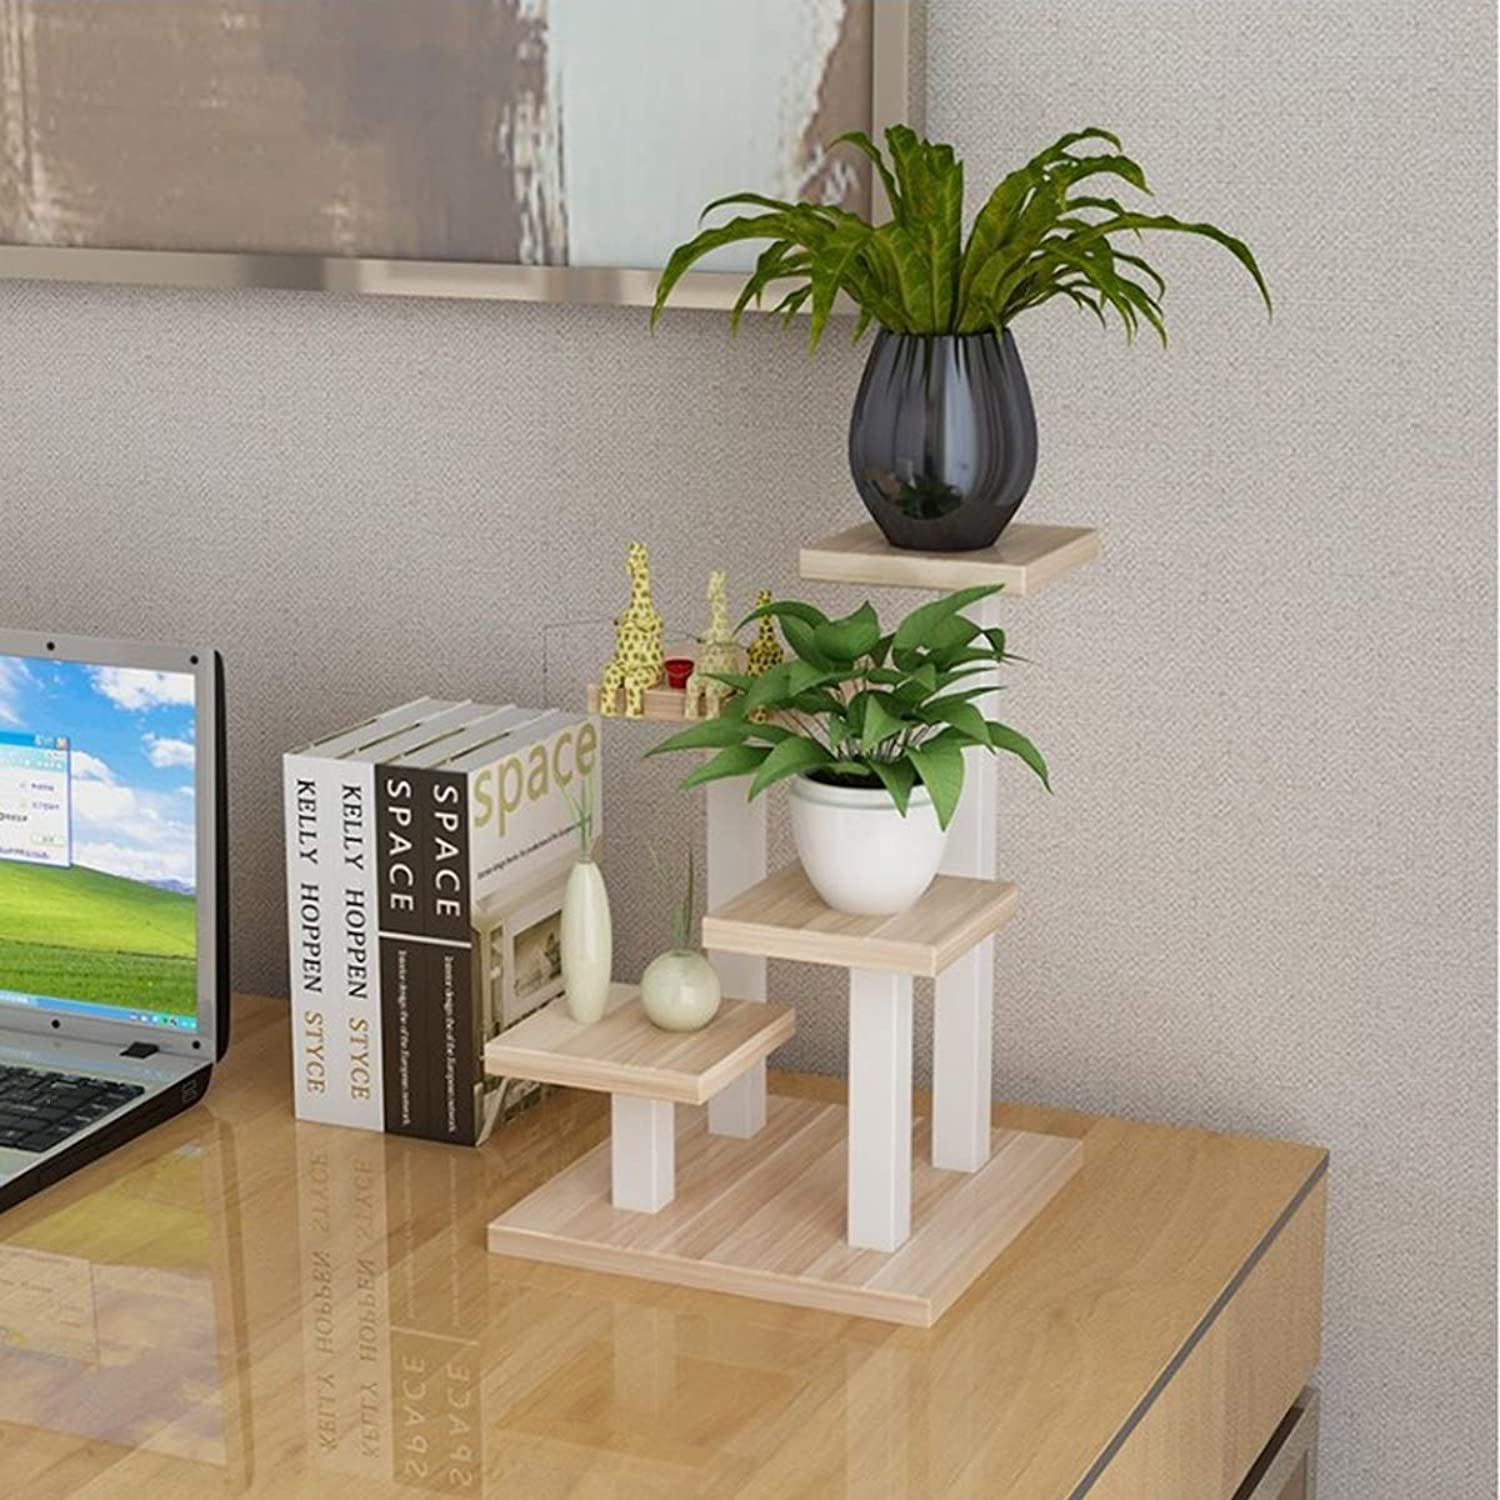 QIJ Wooden Plant Flower Display Stand Storage Rack Modern Home Living Room Office Tabletop Decorative,Woodcolor,A